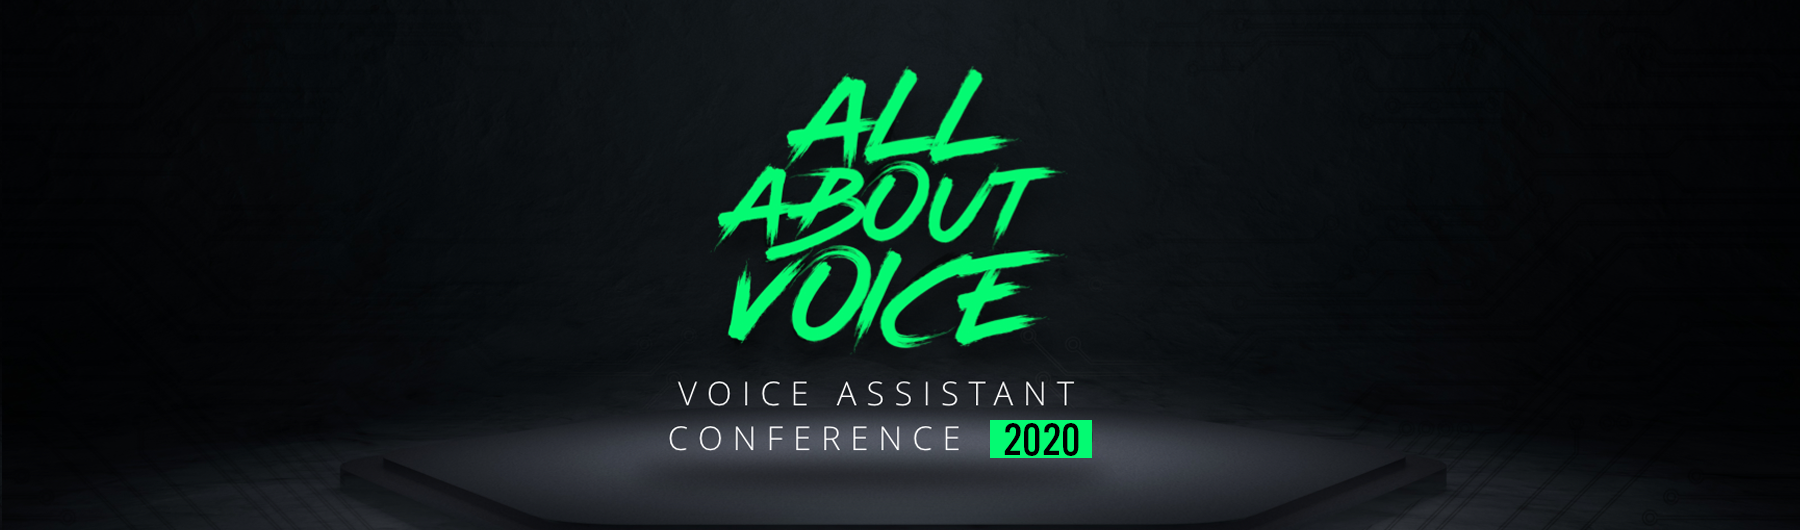 ALL ABOUT VOICE Conference 2020